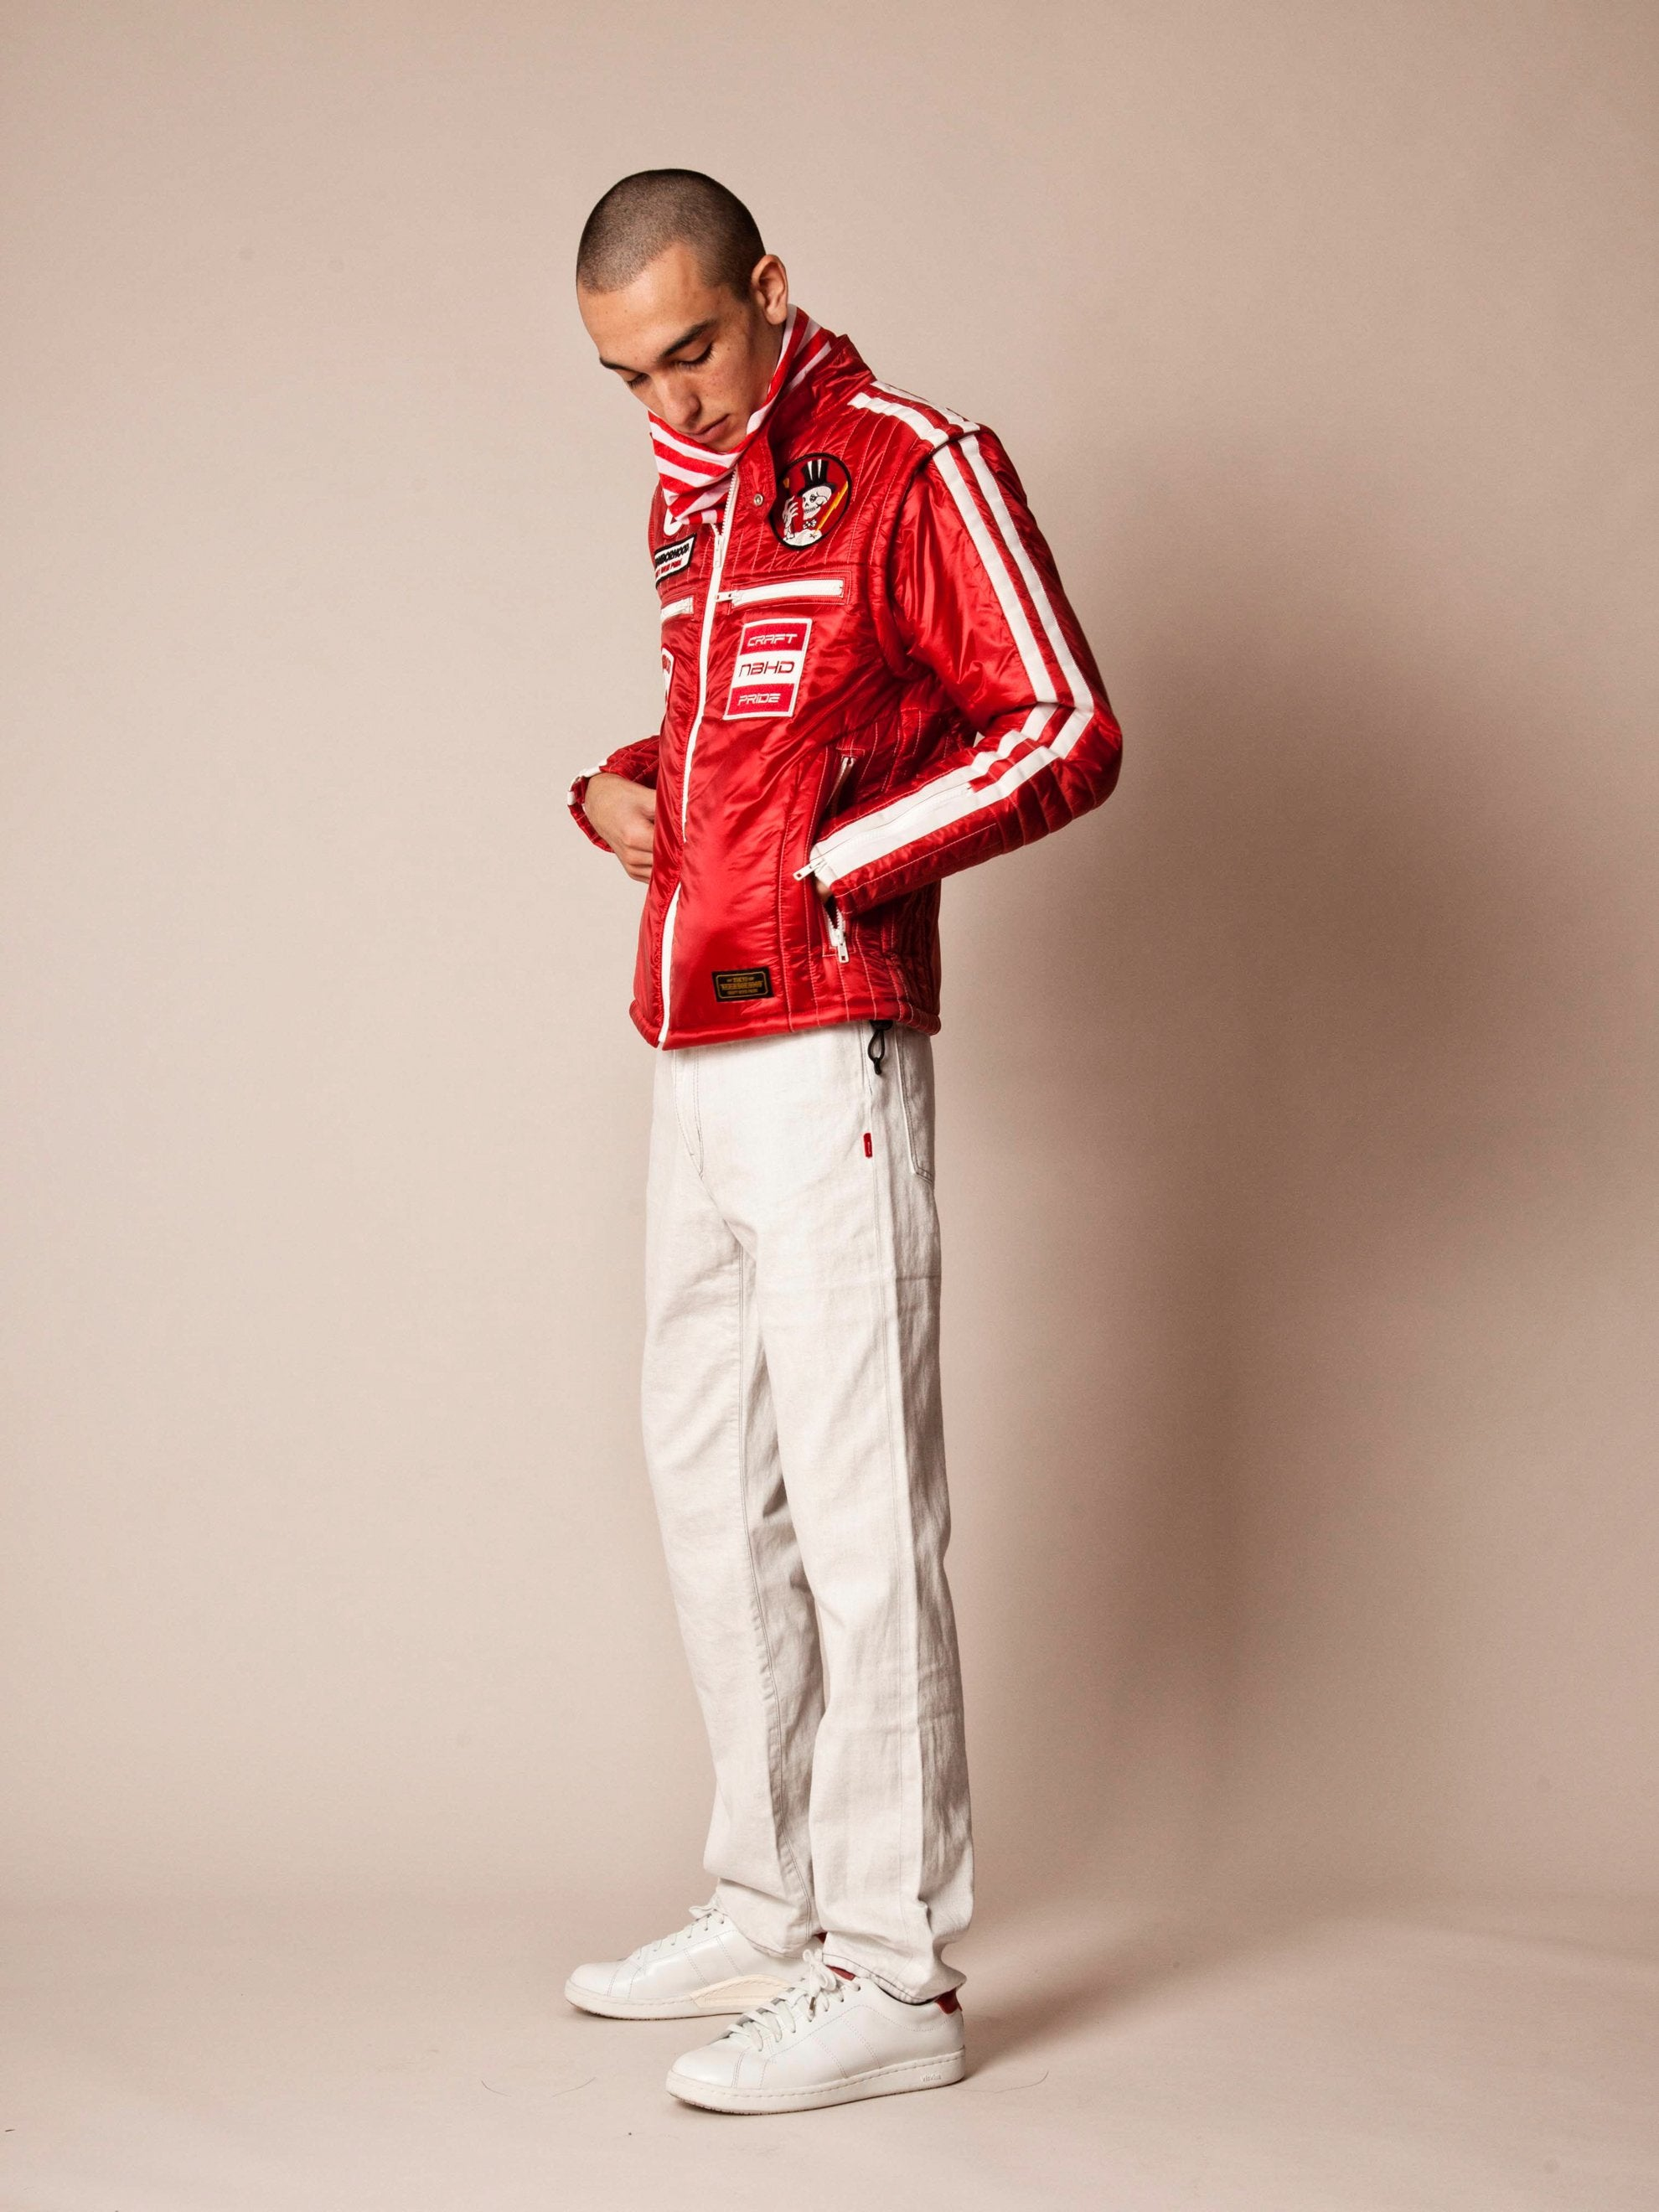 Red Racing Jacket 3